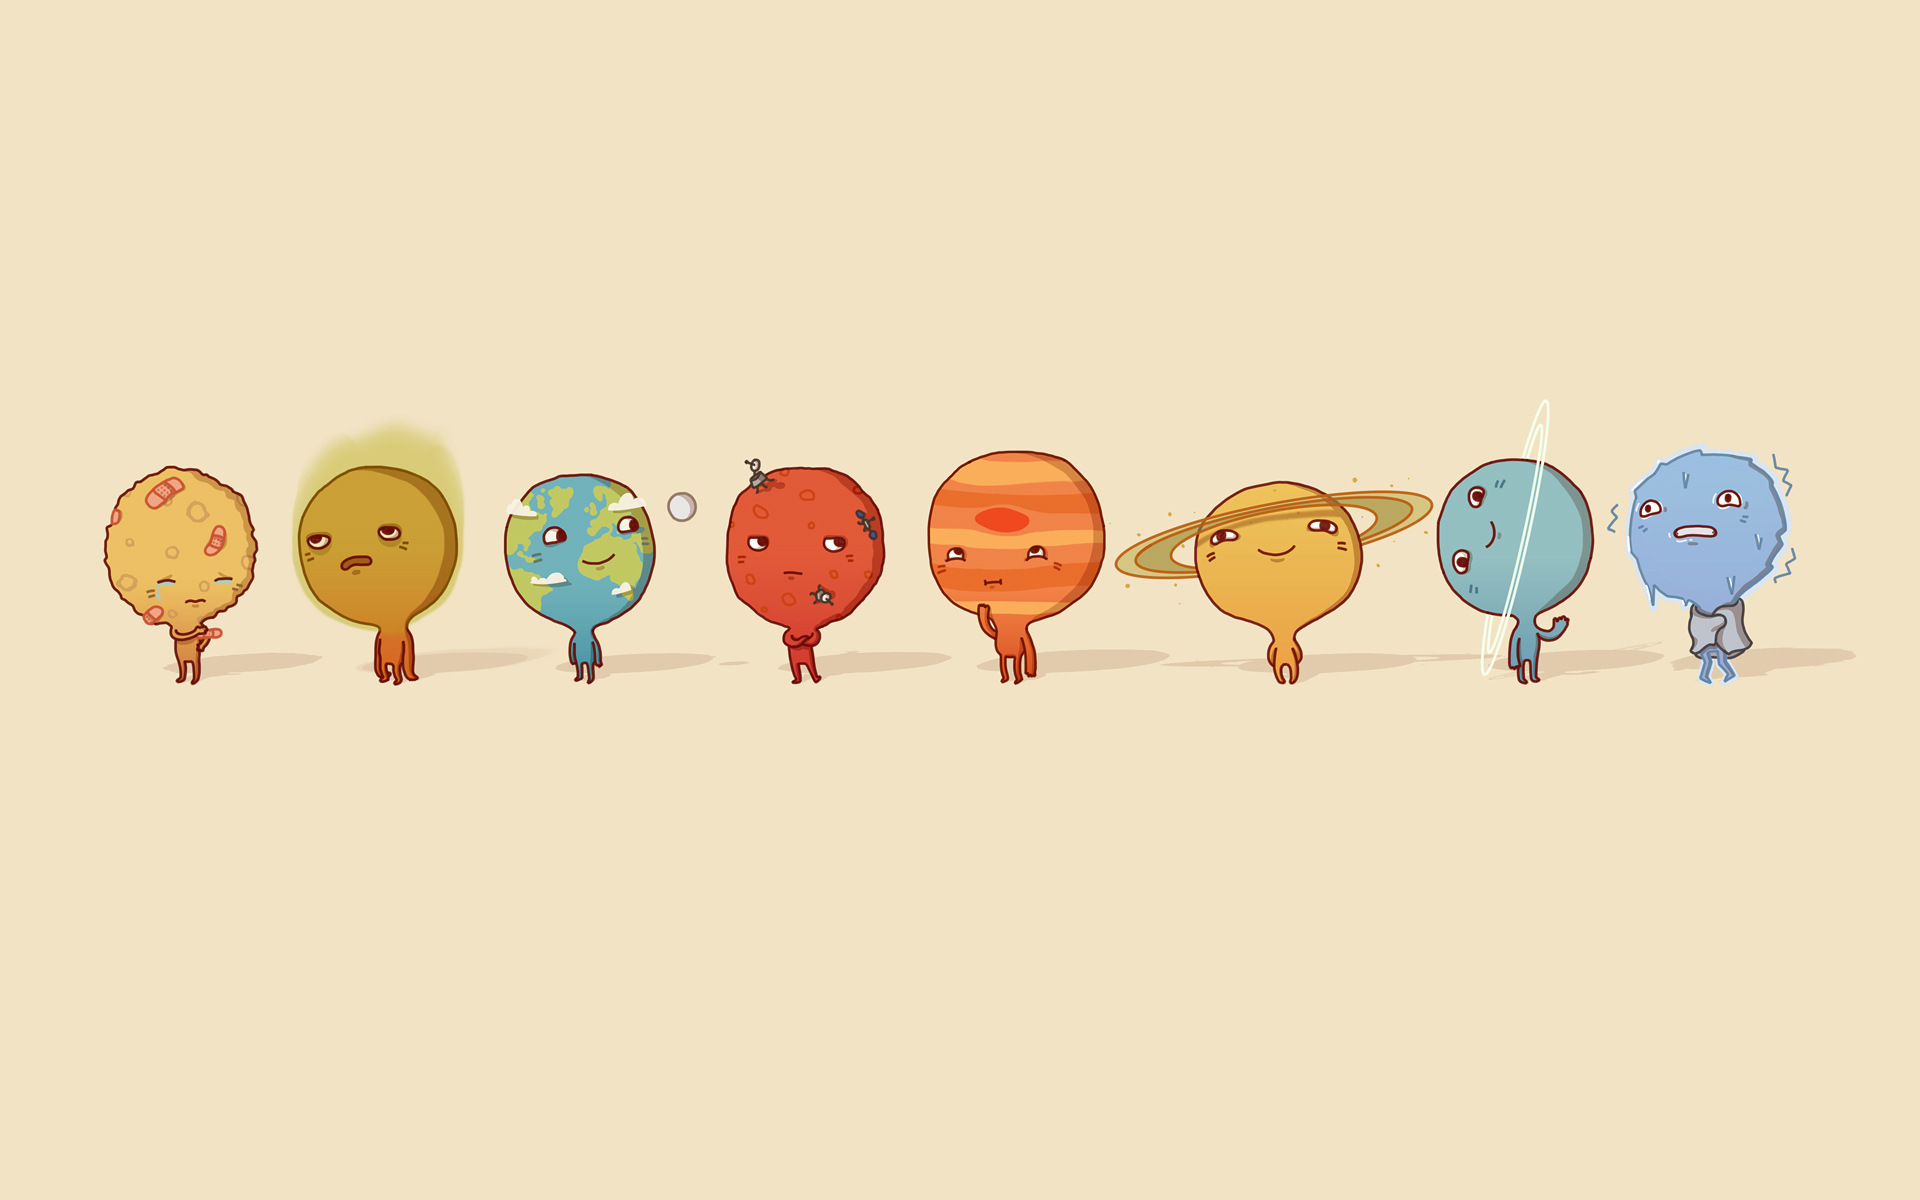 Drawn planets cartoon Cartoon Wallpapers Cartoon GetCoolWallpapers Planets